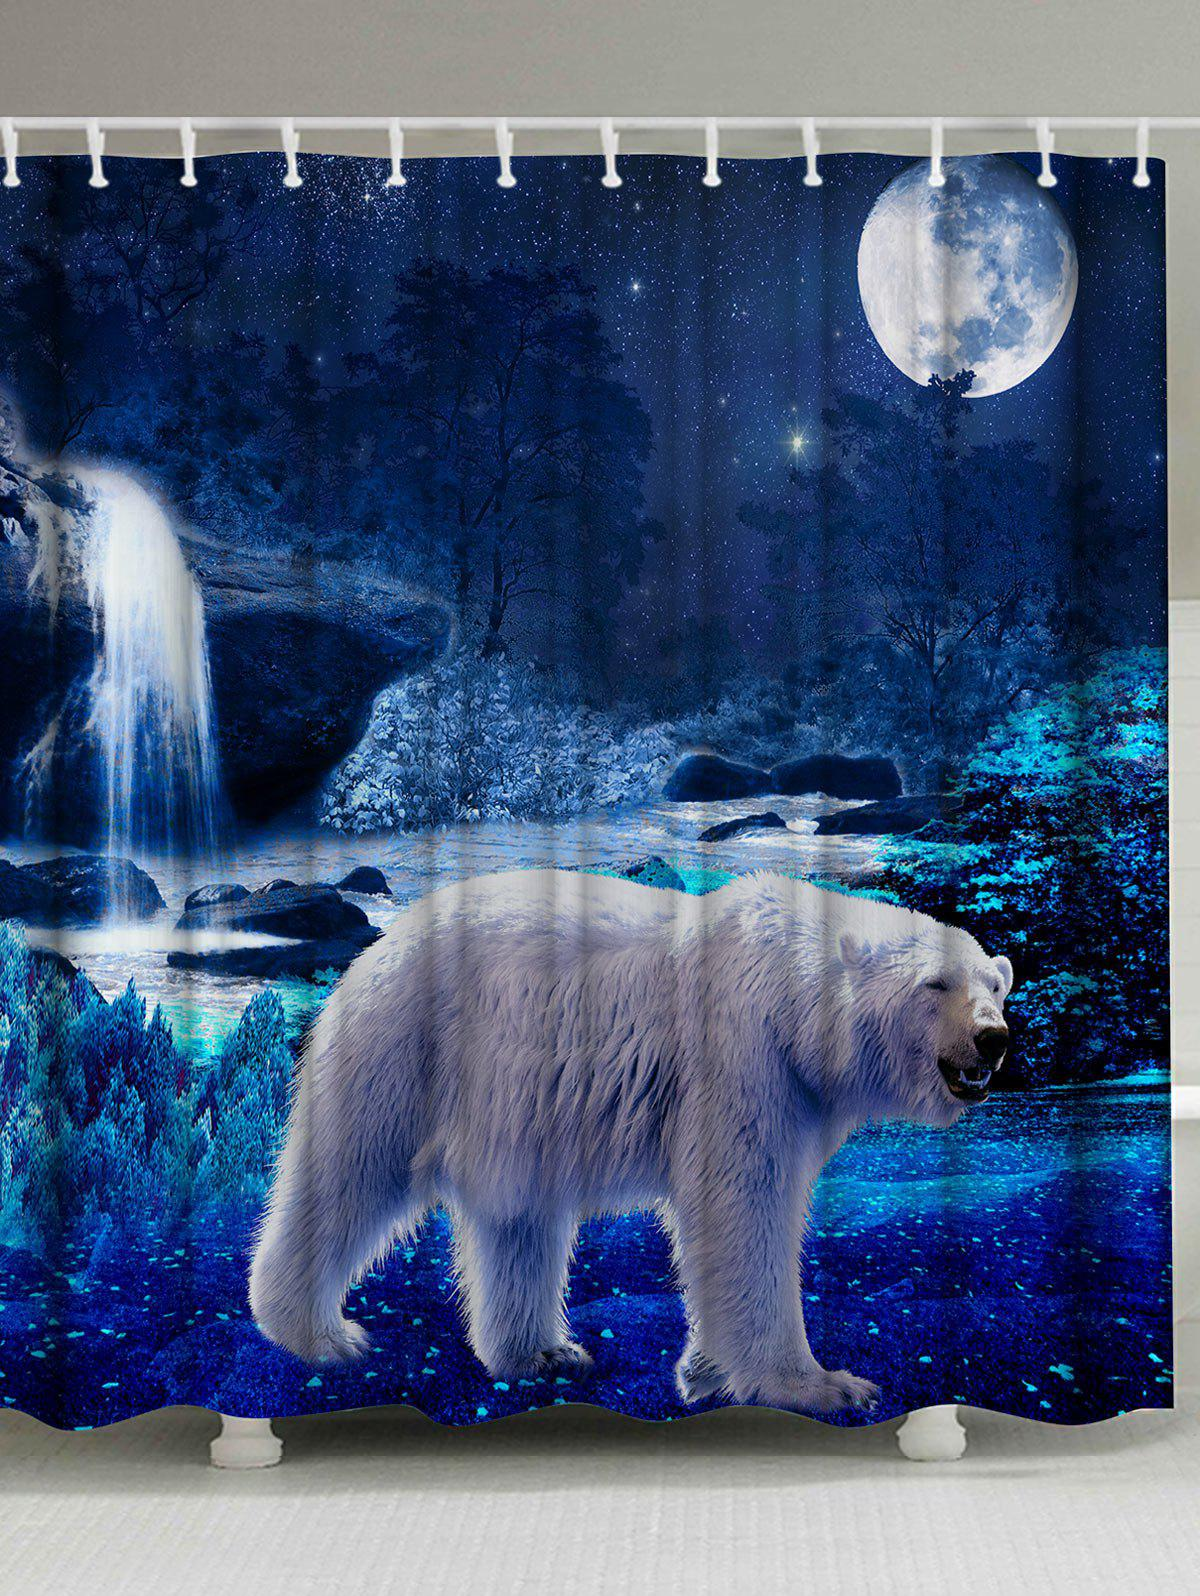 2017 Bear Animal Shower Curtain With Hooks Cerulean W Inch L Inch In Shower Curtains Online